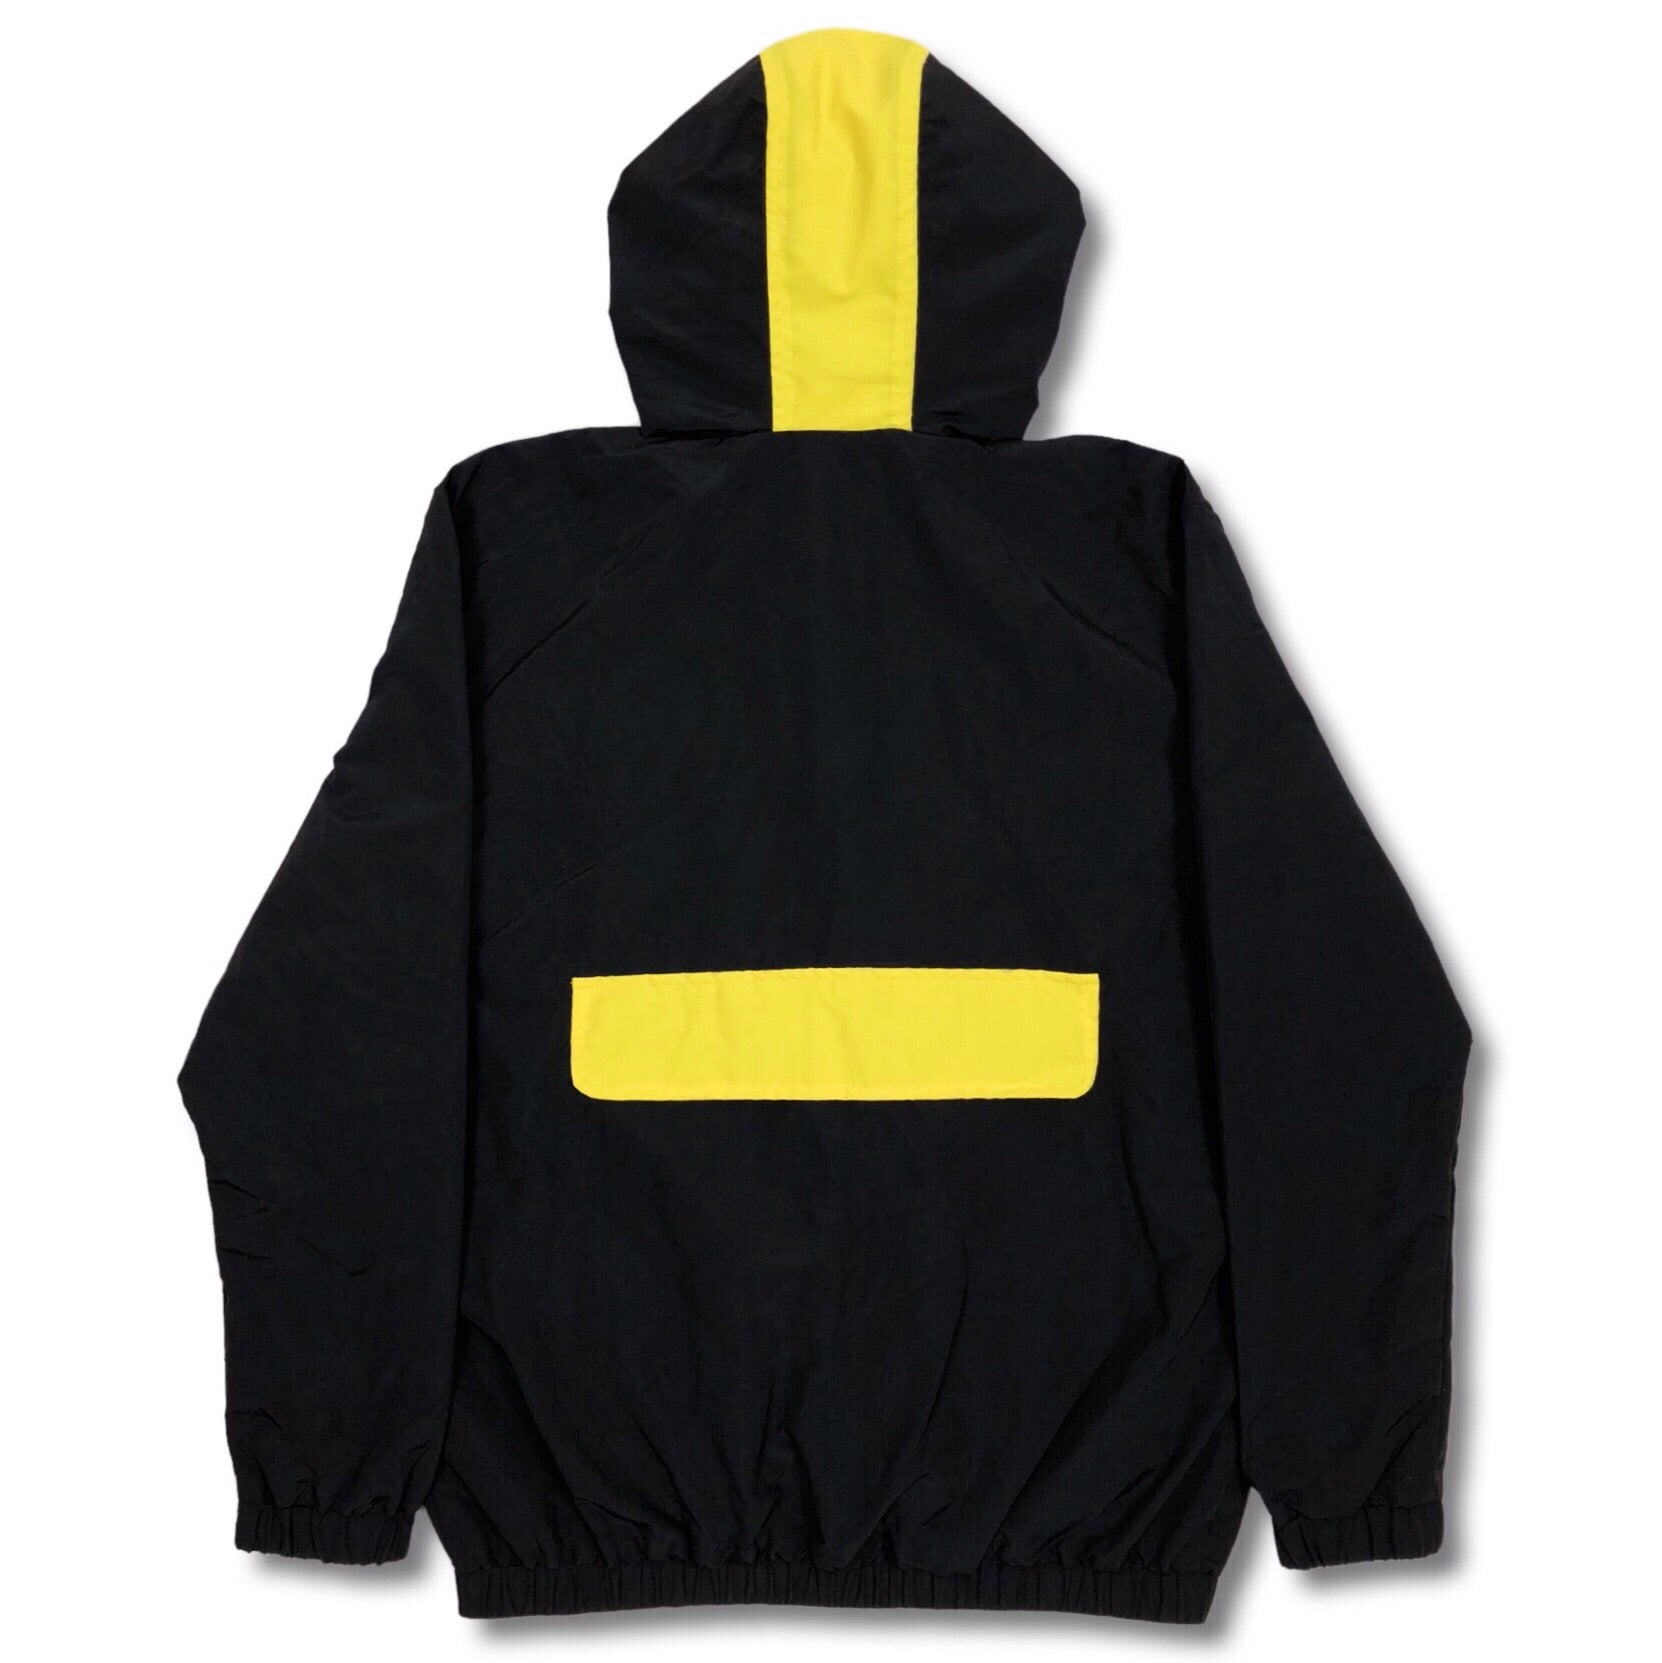 Stealth Hooded Tracksuit Jacket - Black/Yellow Bledwear Bled